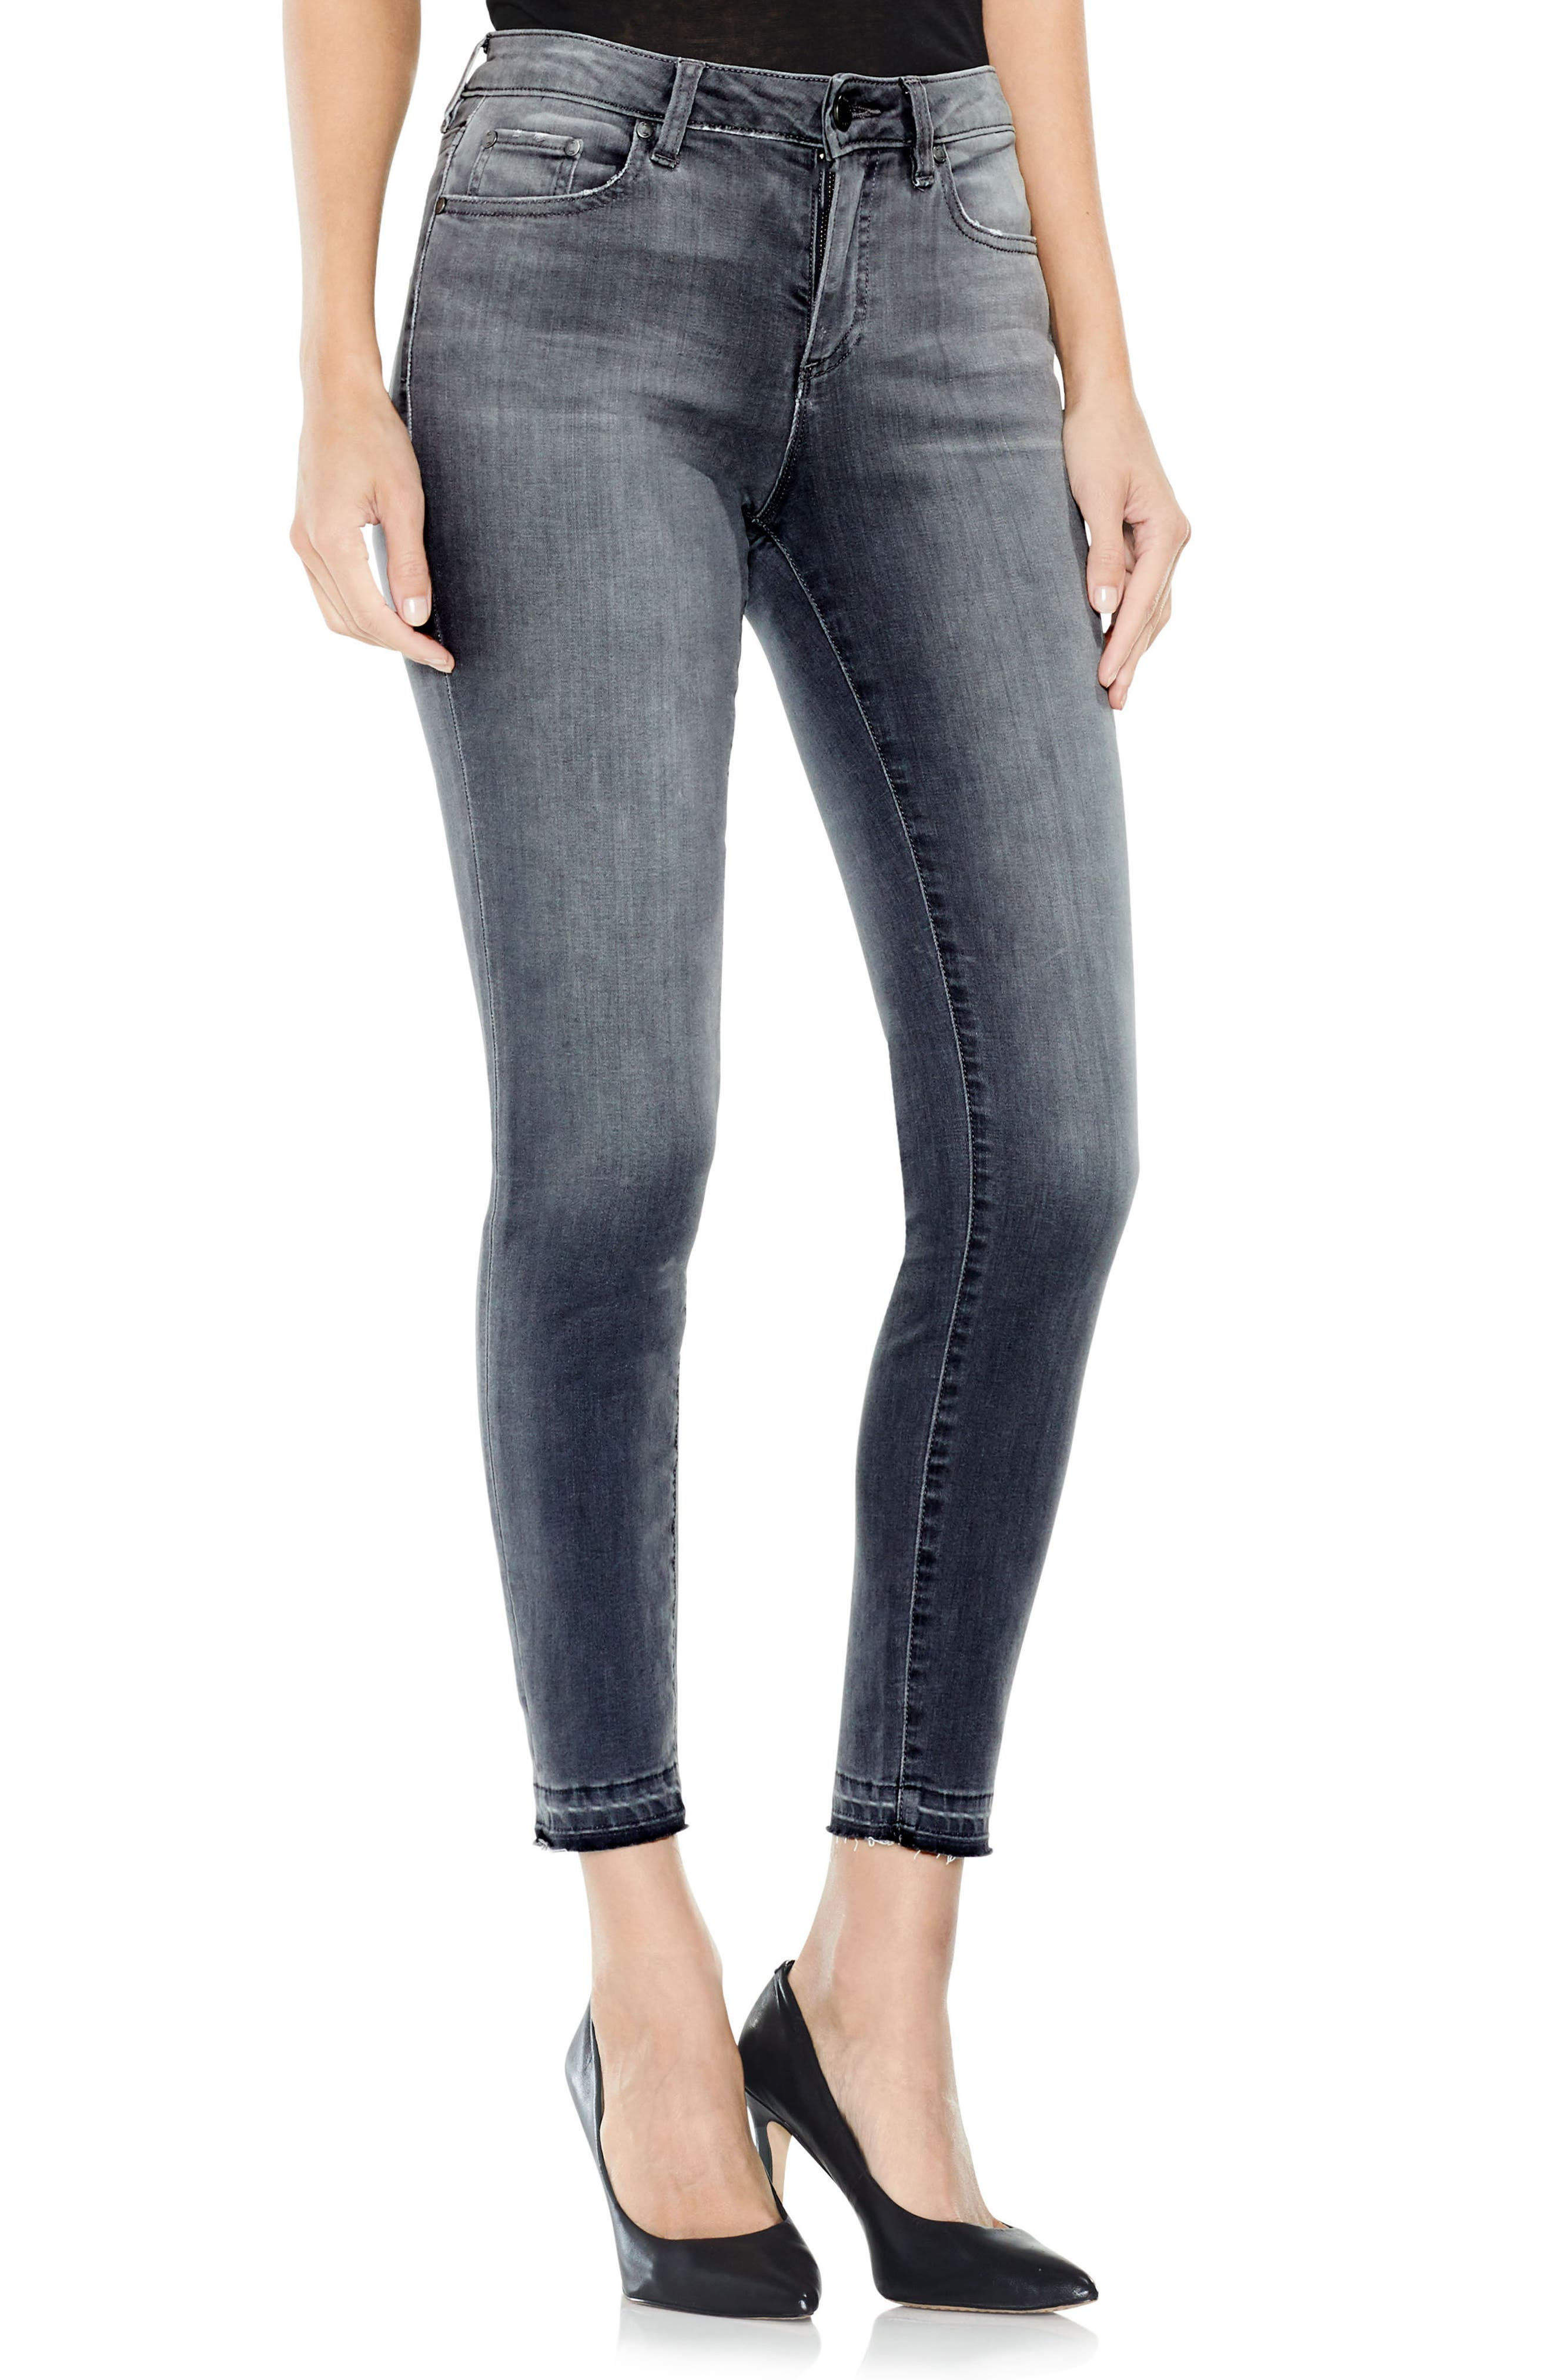 Two by Vince Camuto Grey Released Hem Jeans,                         Main,                         color, COBBLESTONE